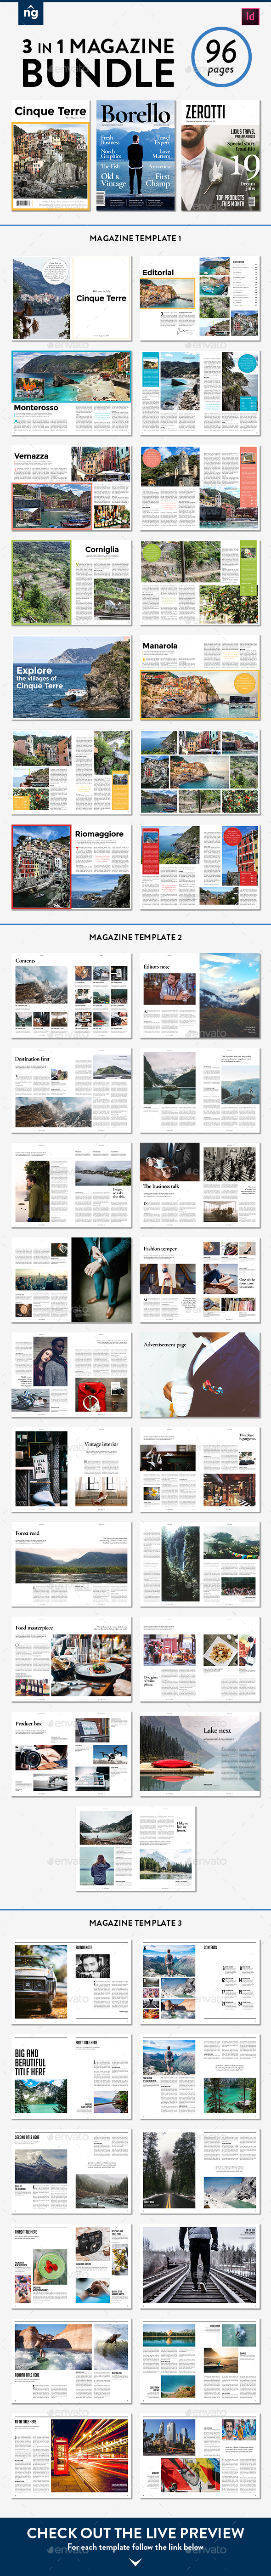 Magazine Template Bundle, Vol. 3 - Magazines Print Templates